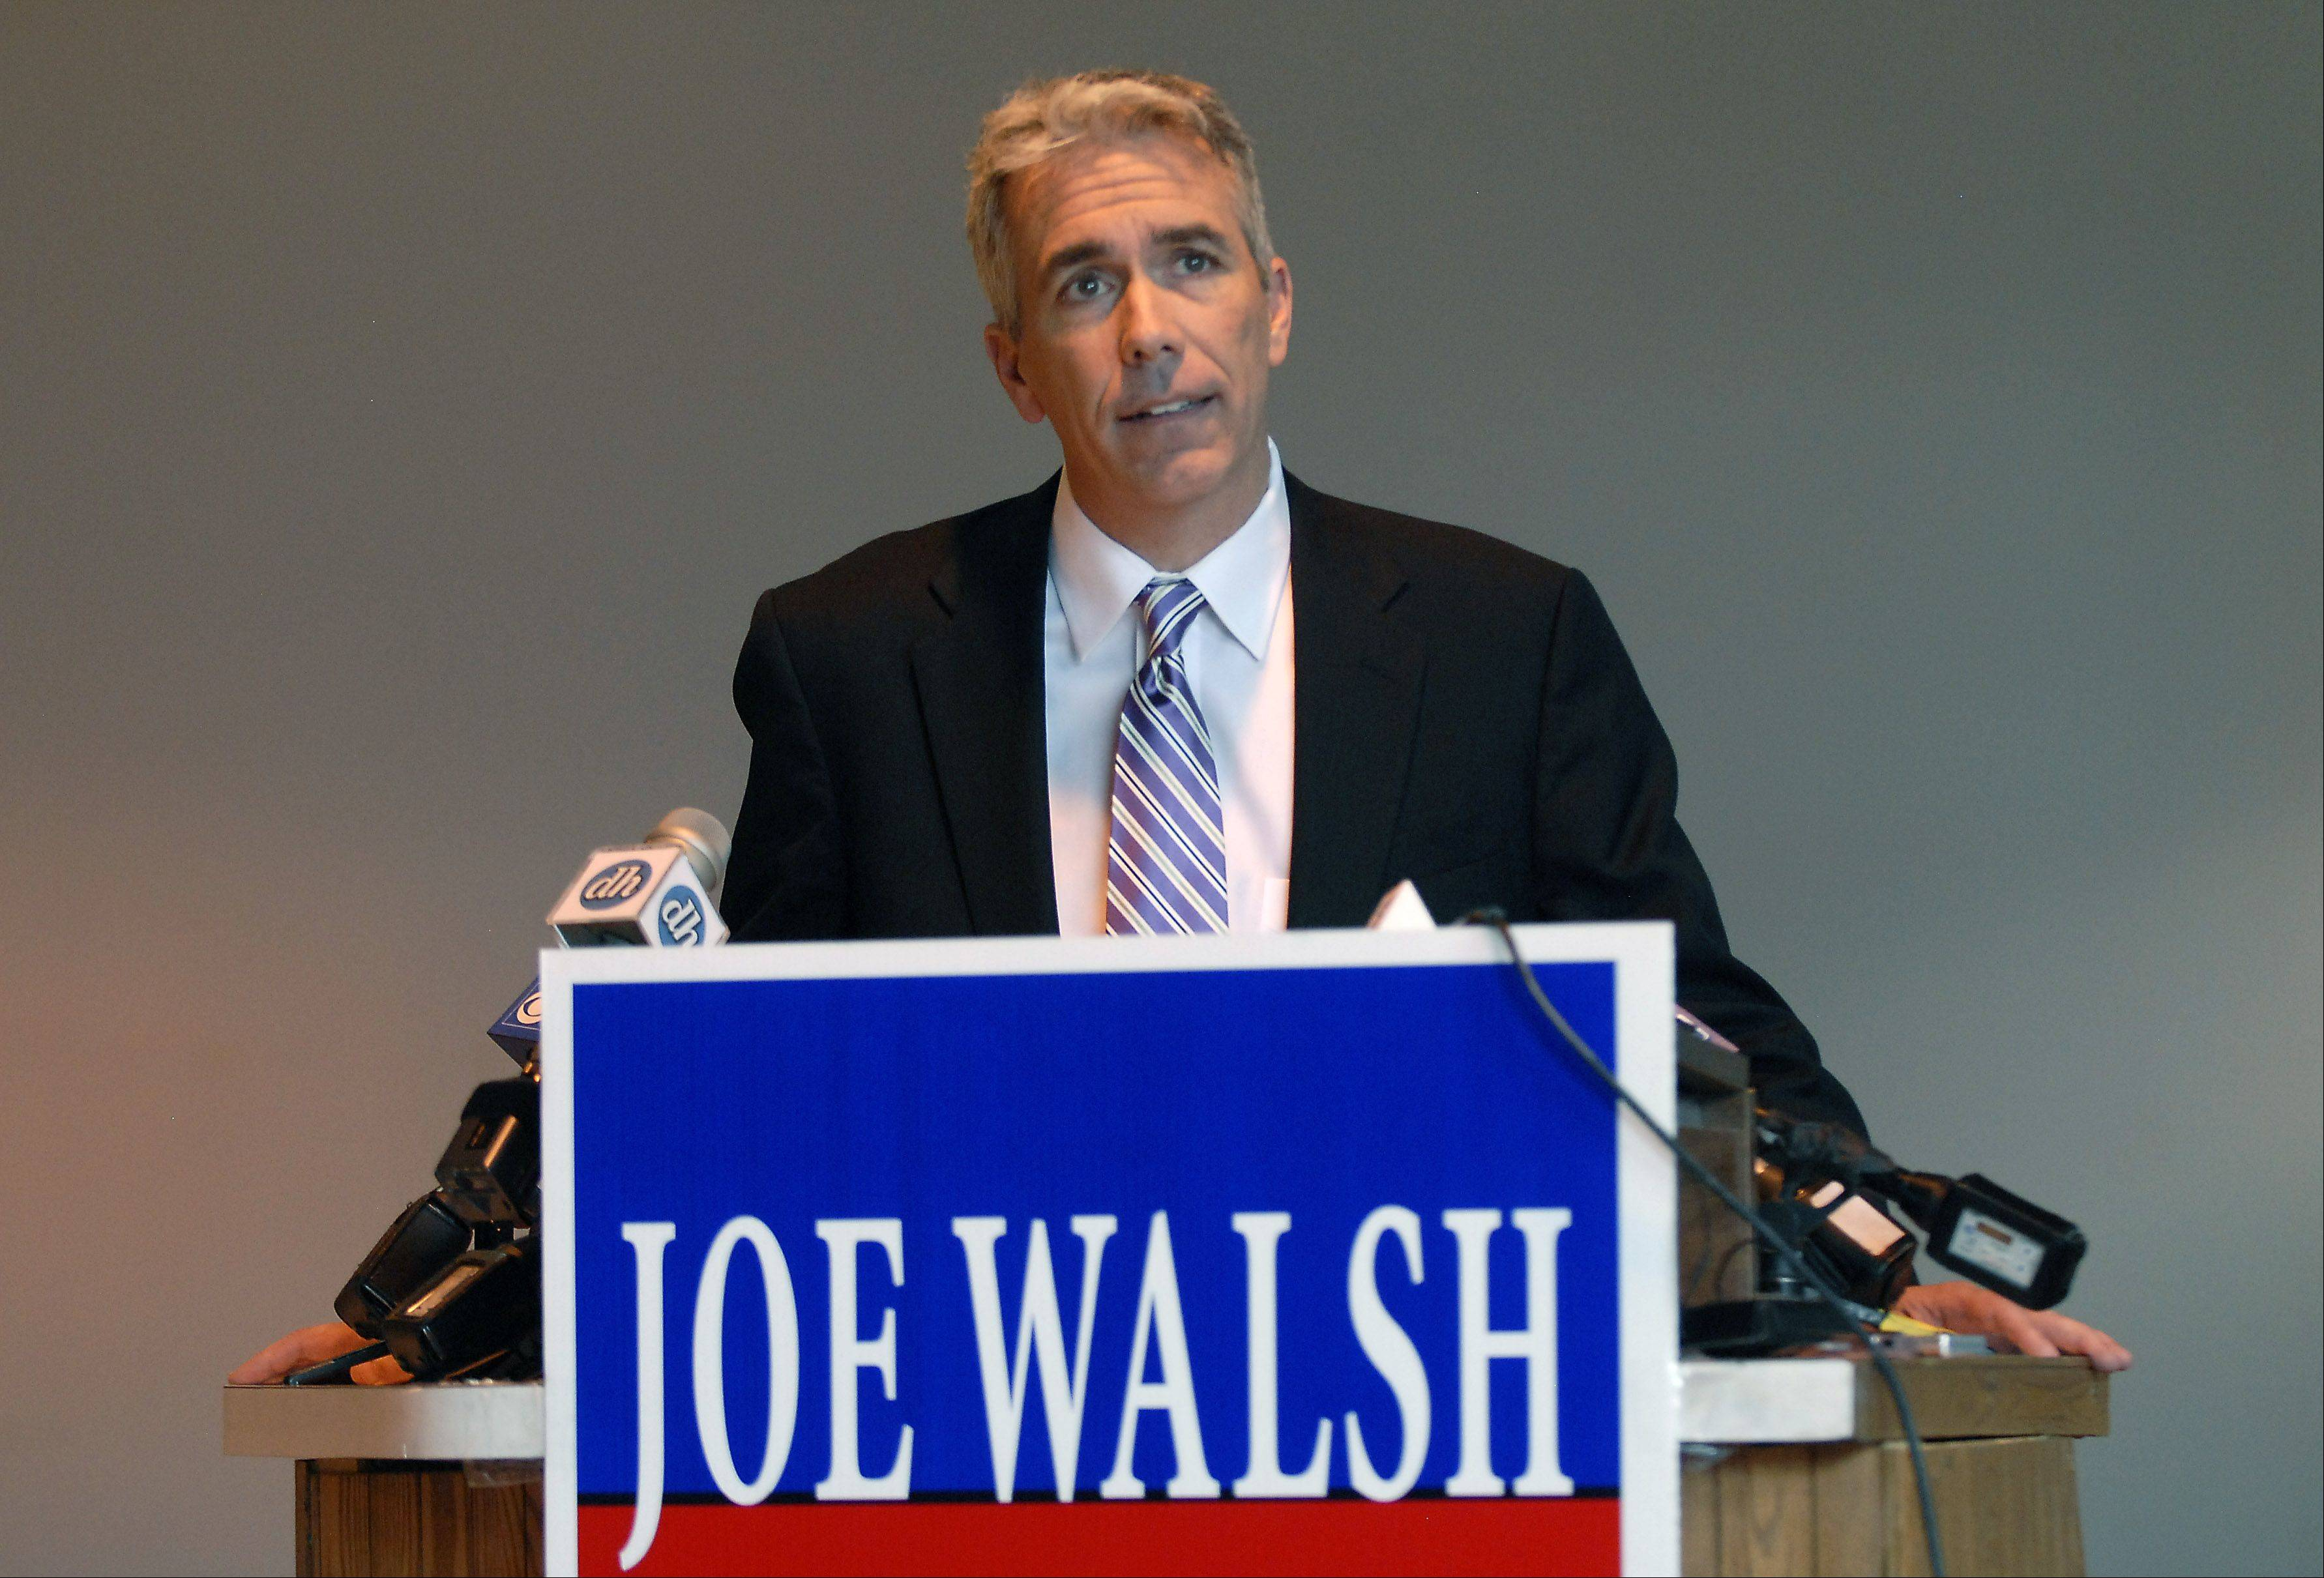 Congressman Joe Walsh reaffirms his pro-life stance without exception during a news conference at a warehouse in Elk Grove Village last Friday afternoon.